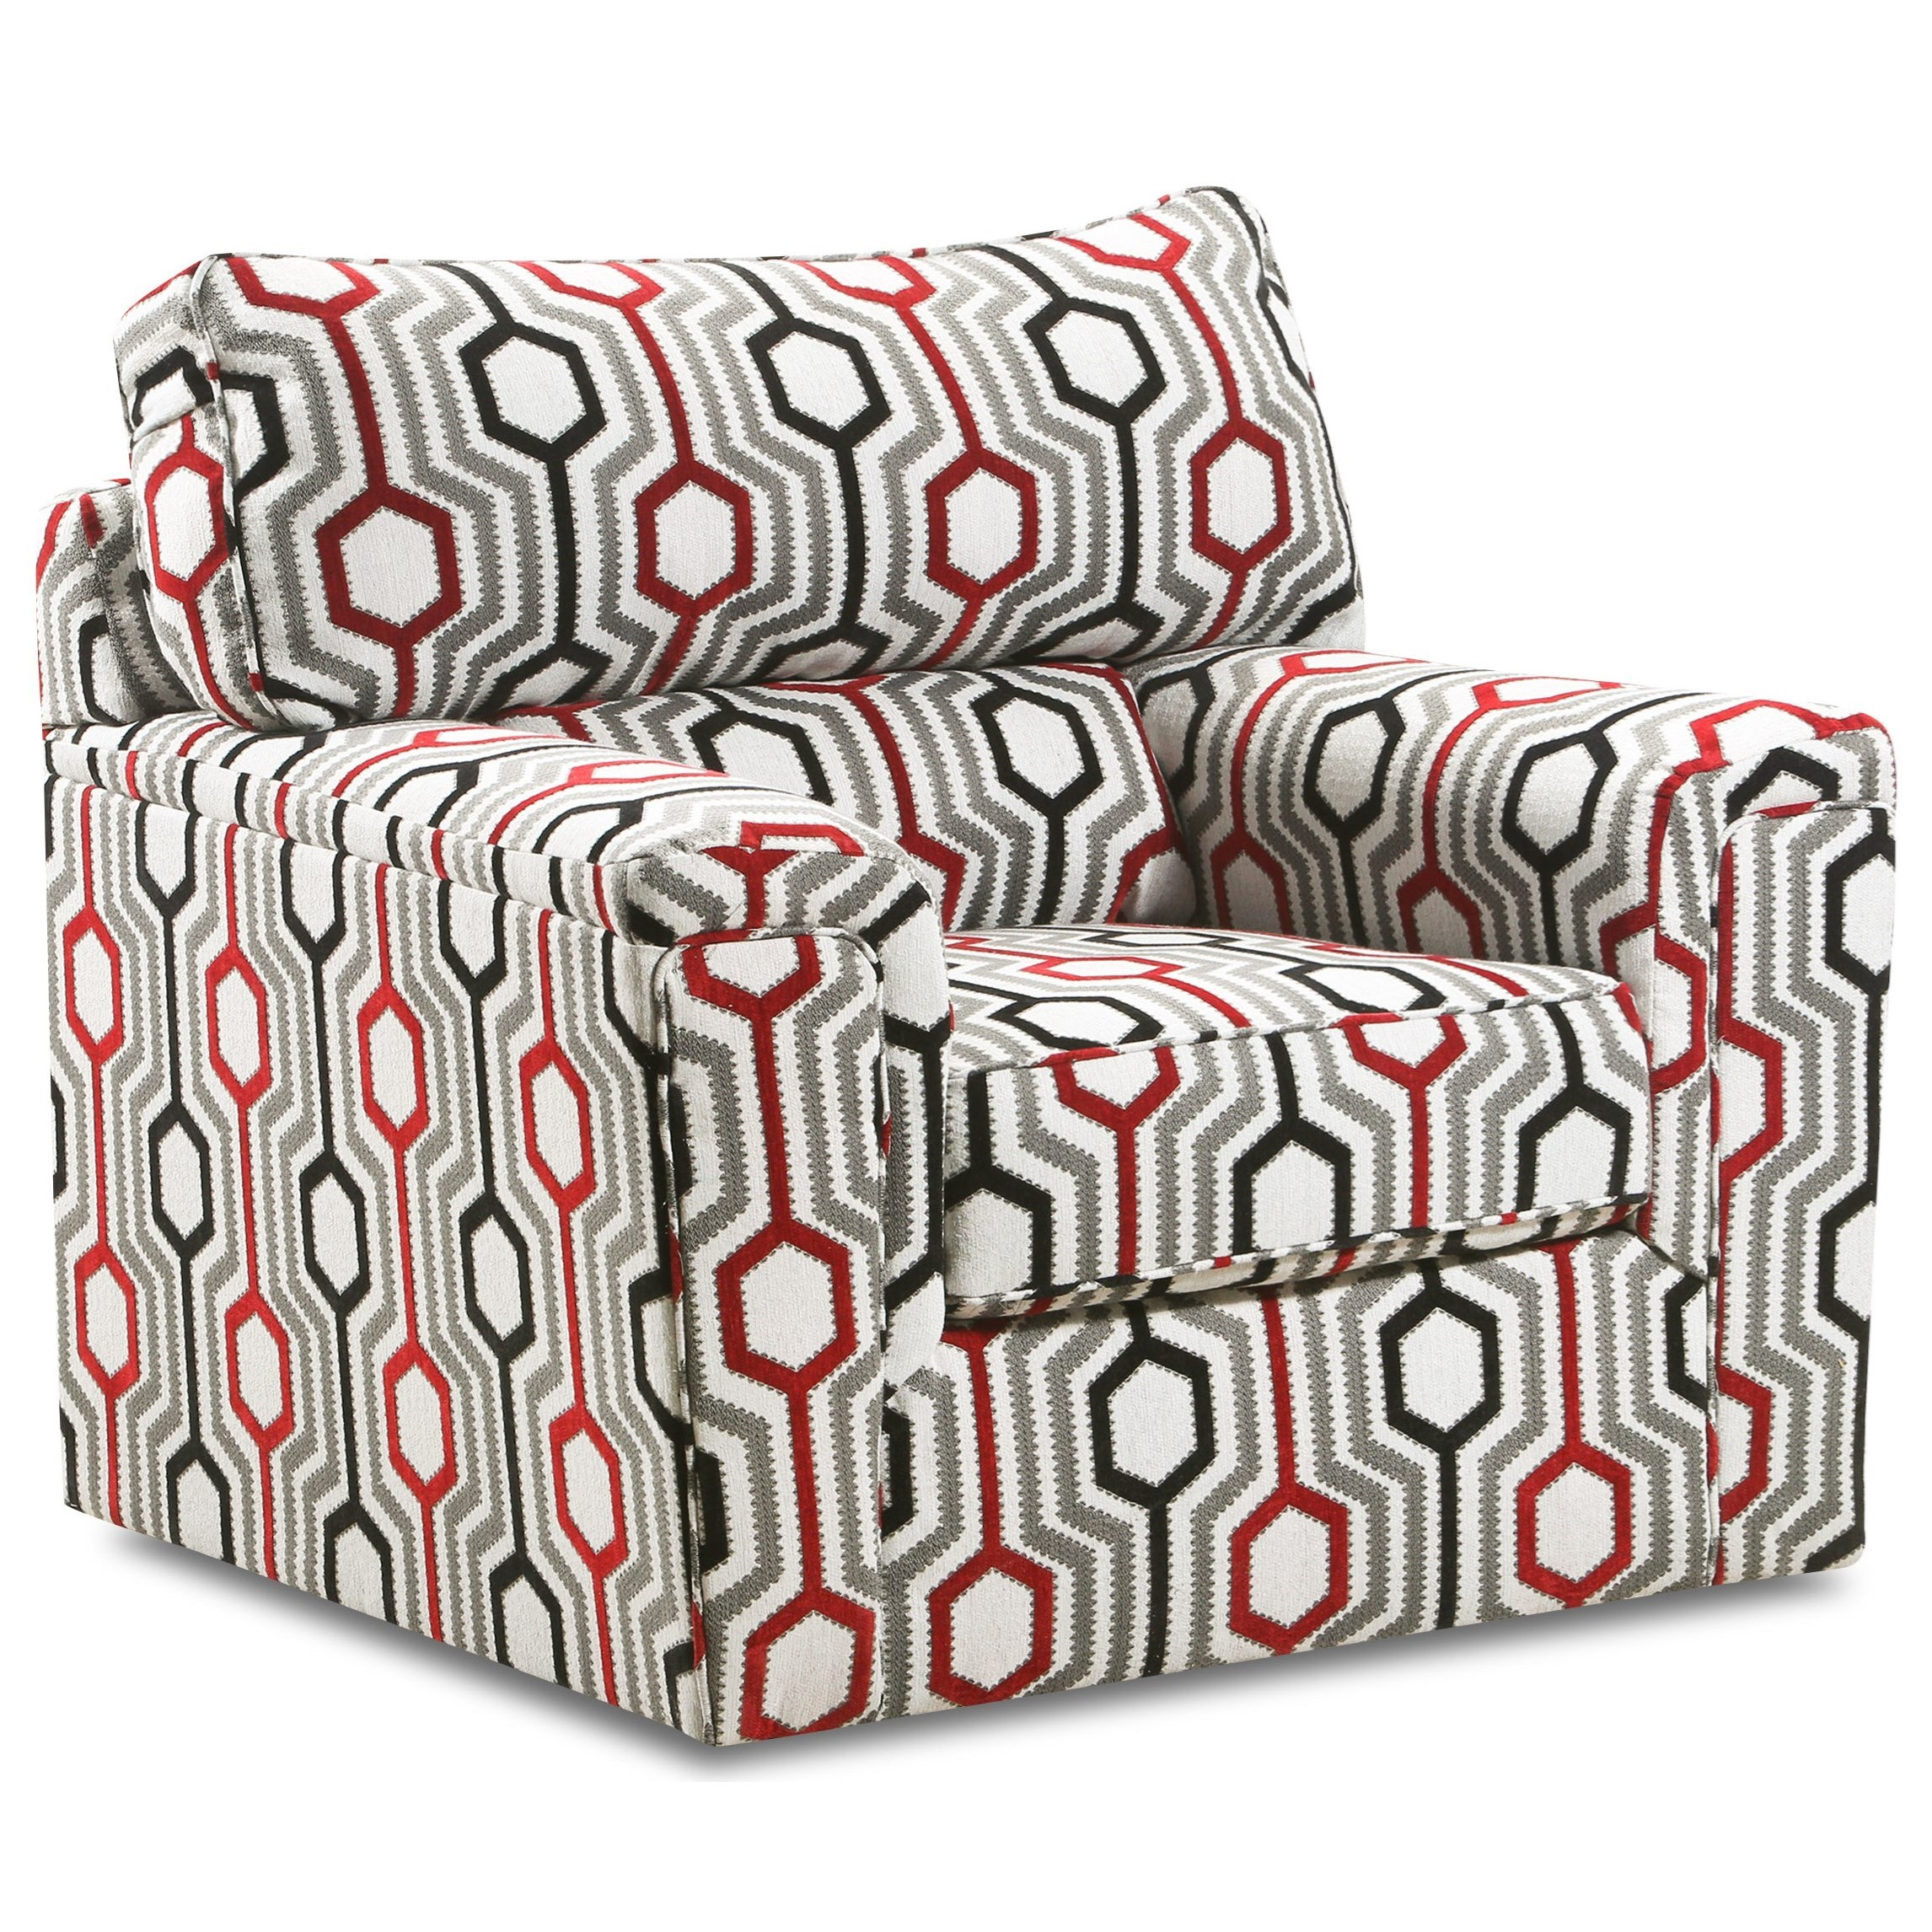 2015 Accent Swivel Chair by Lane at Story & Lee Furniture